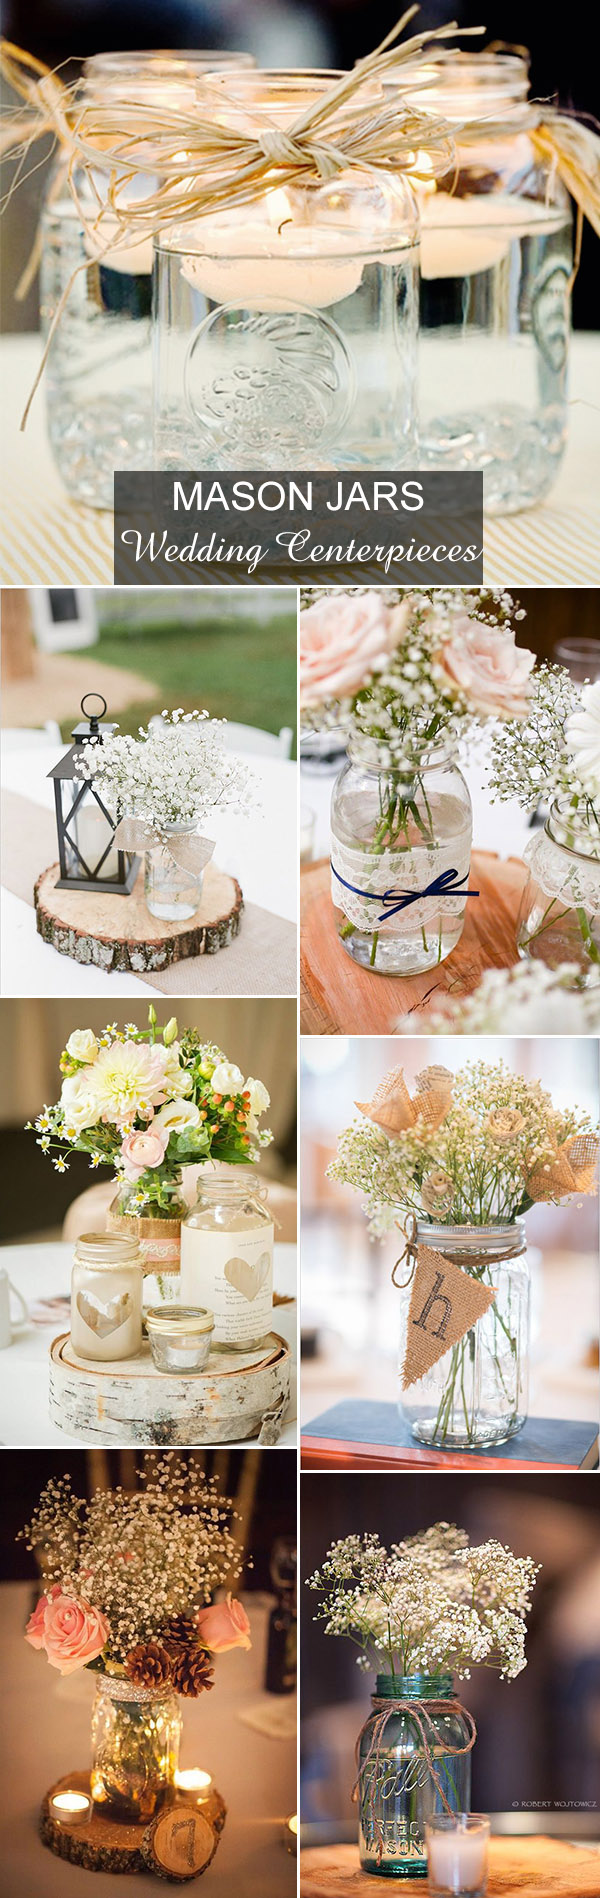 Rustic wedding ideas 30 ways to use mason jars country rustic mason jars inspired wedding centerpieces ideas junglespirit Choice Image